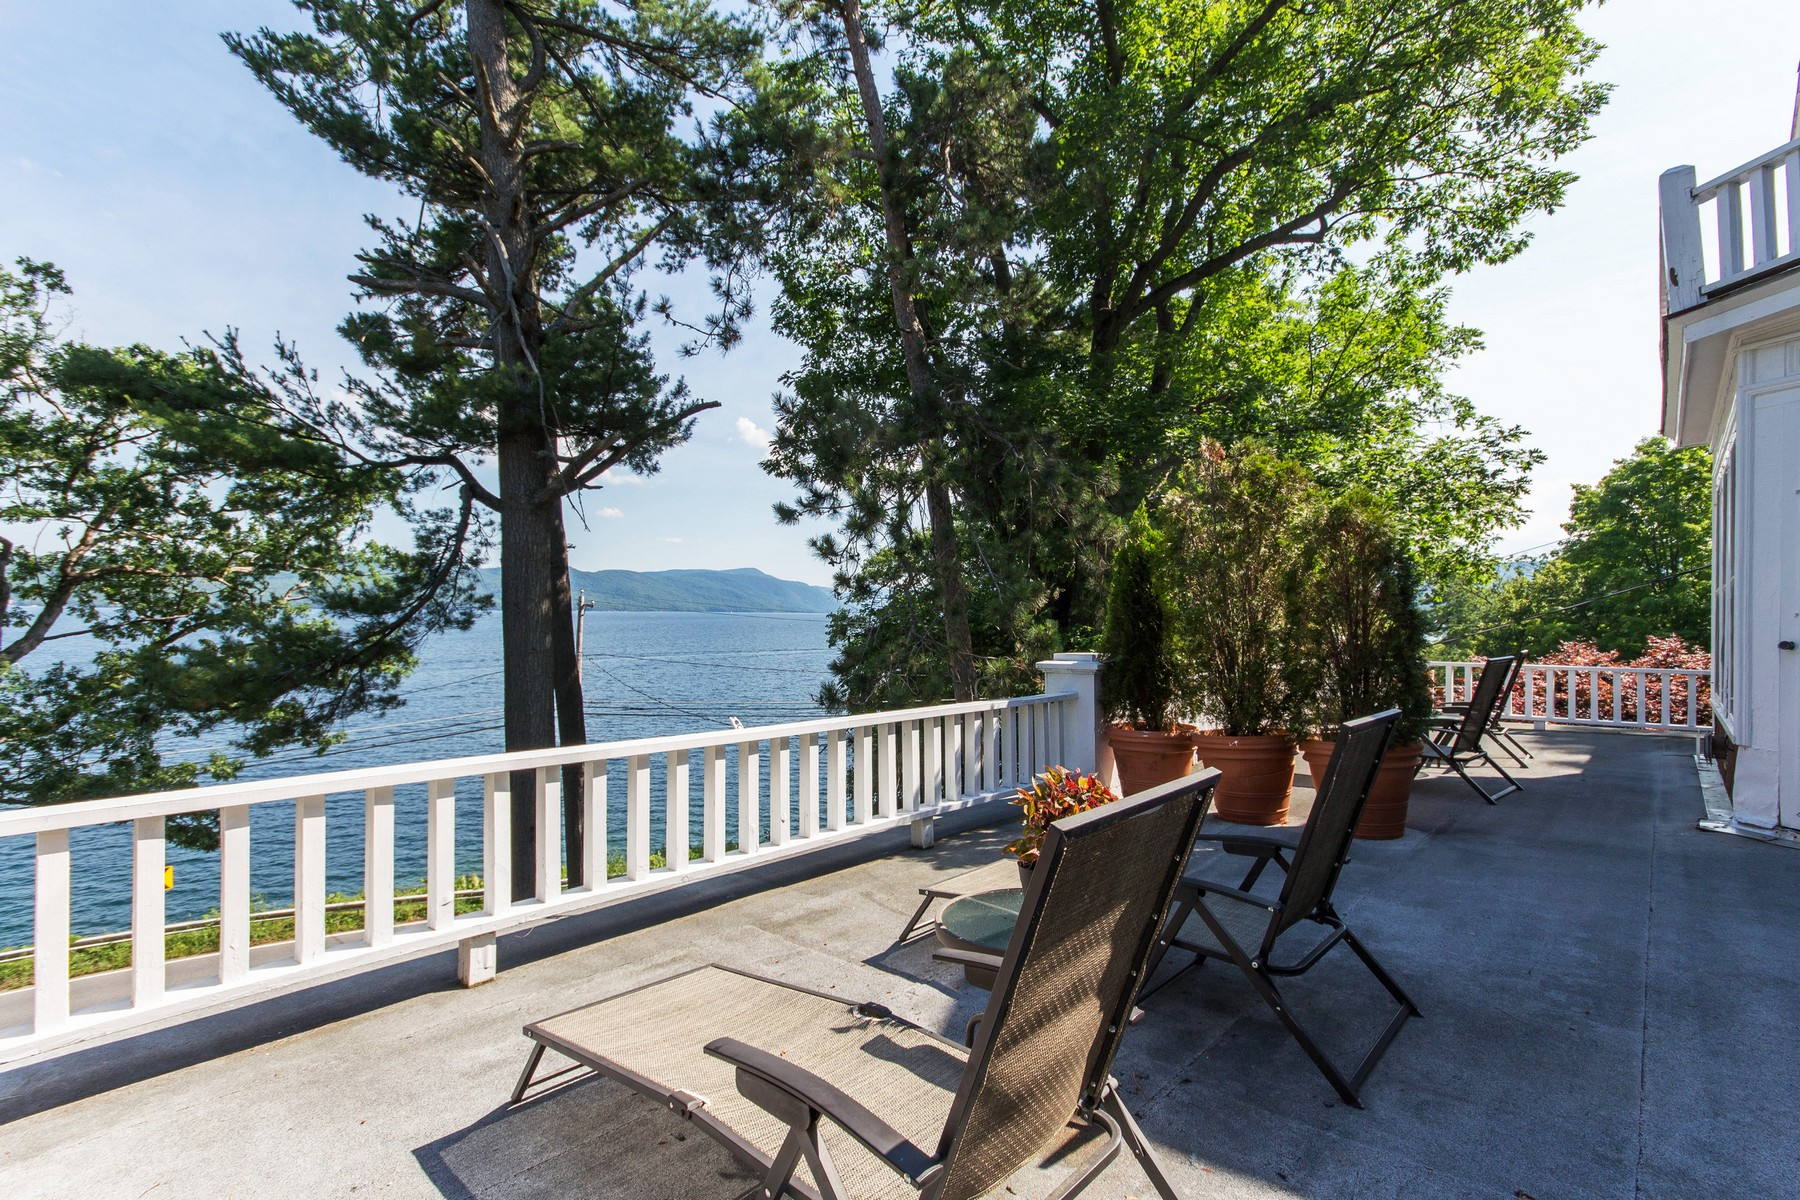 Additional photo for property listing at Ruah House on Lake George 9221  Lakeshore Dr Hague, Nueva York 12836 Estados Unidos